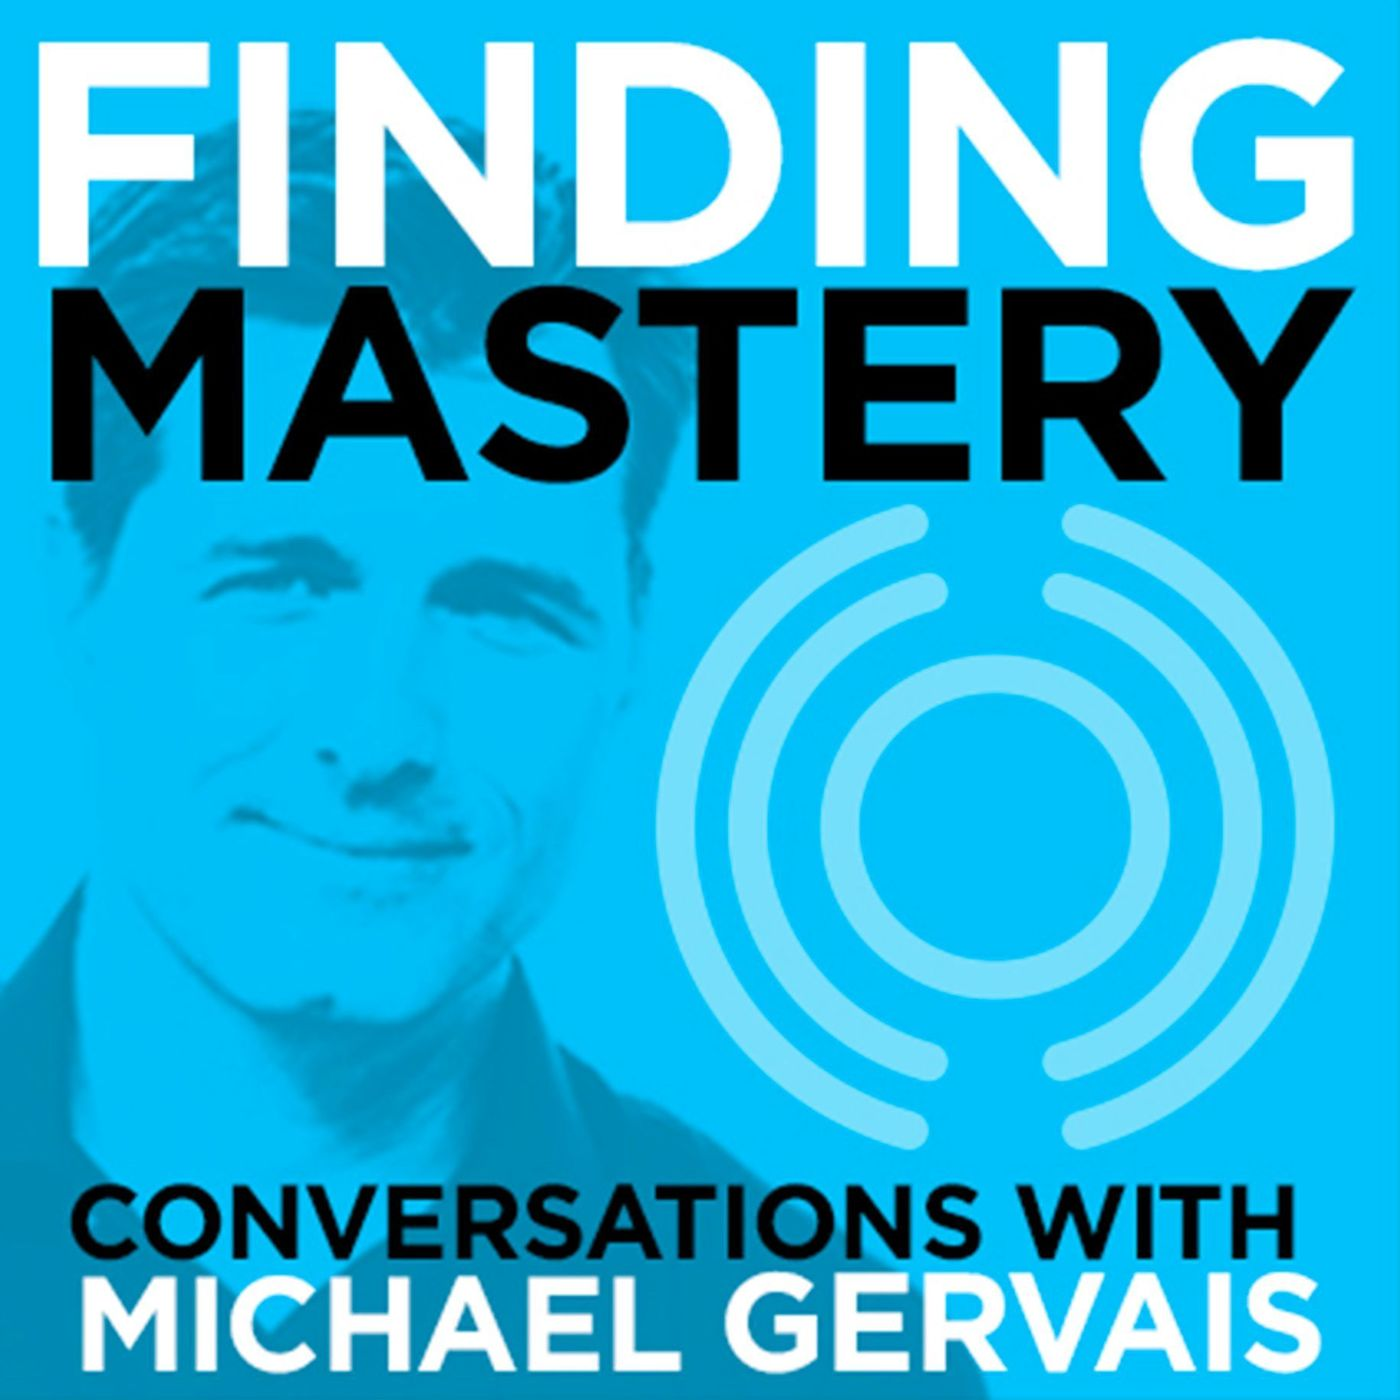 Finding Mastery: Conversations with Michael Gervais